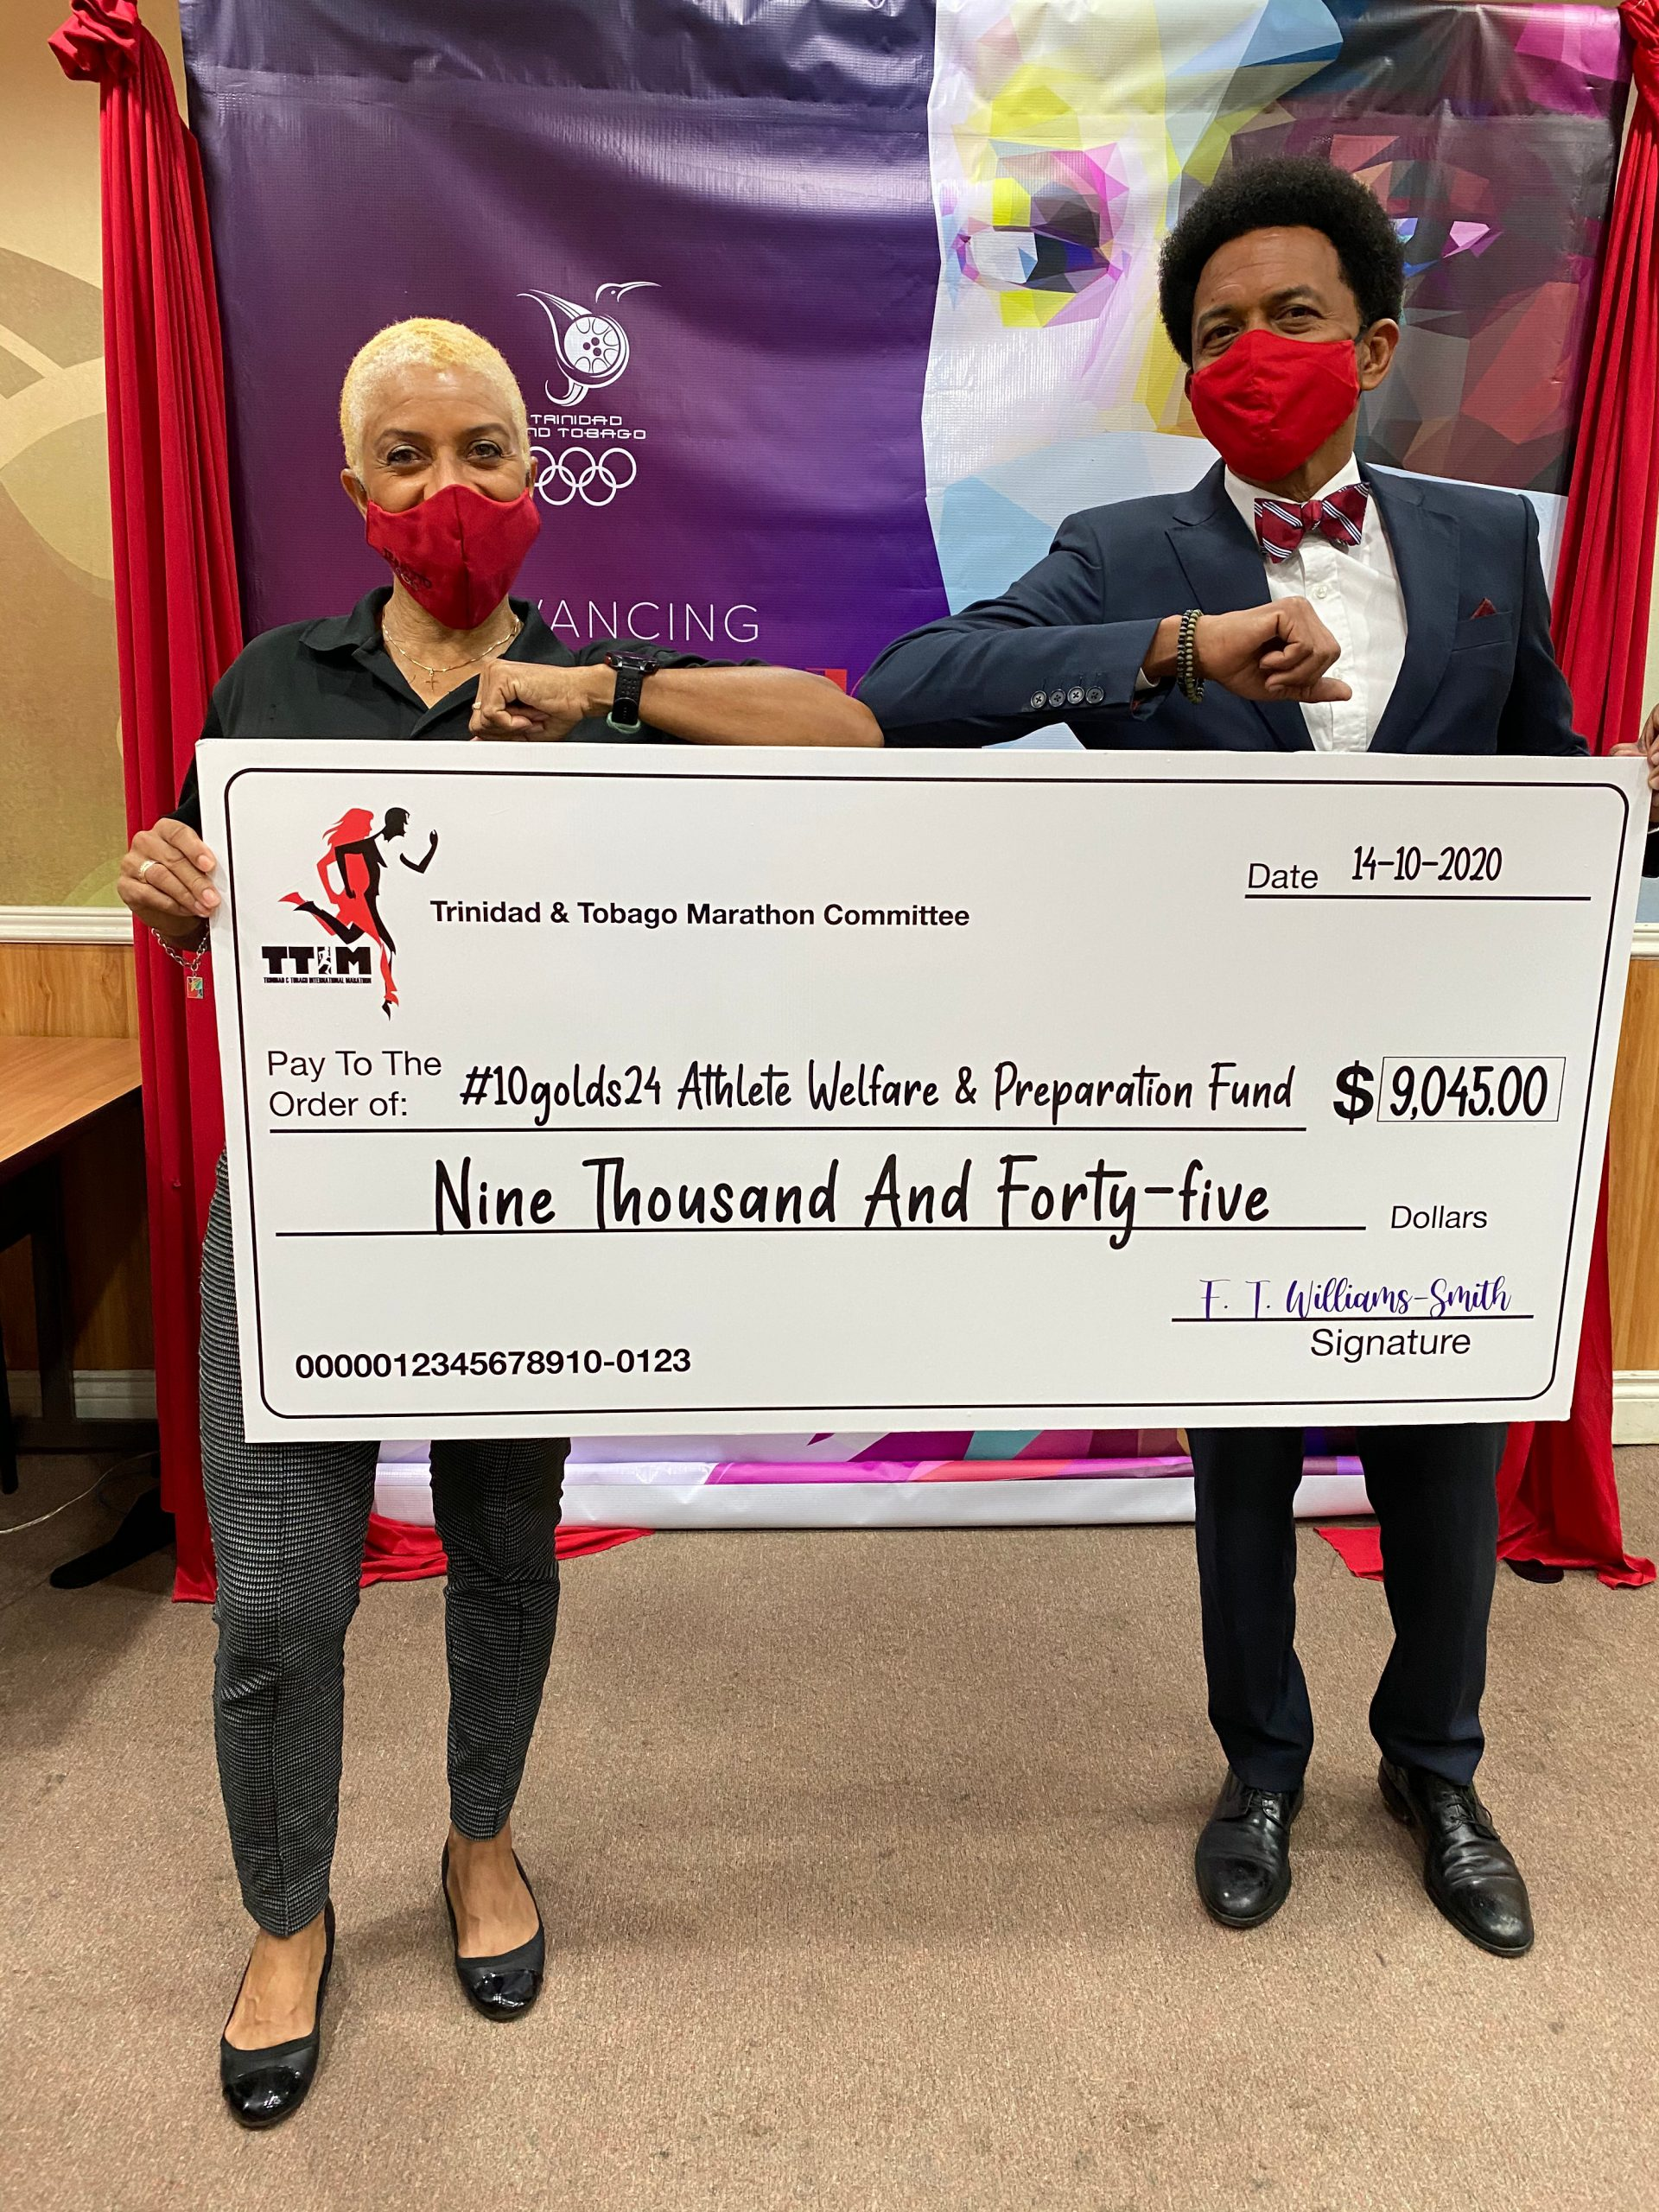 The Trinidad and Tobago Marathon Committee (TTMC) is pleased to close on our charitable obligations in presenting a cheque for $9,045.00 to Mr. Brian Lewis, President of the Trinidad and Tobago Olympic Committee (TTOC) for the #10Golds24 Athlete Welfare & Preparation Fund representing proceeds from the 2020 event